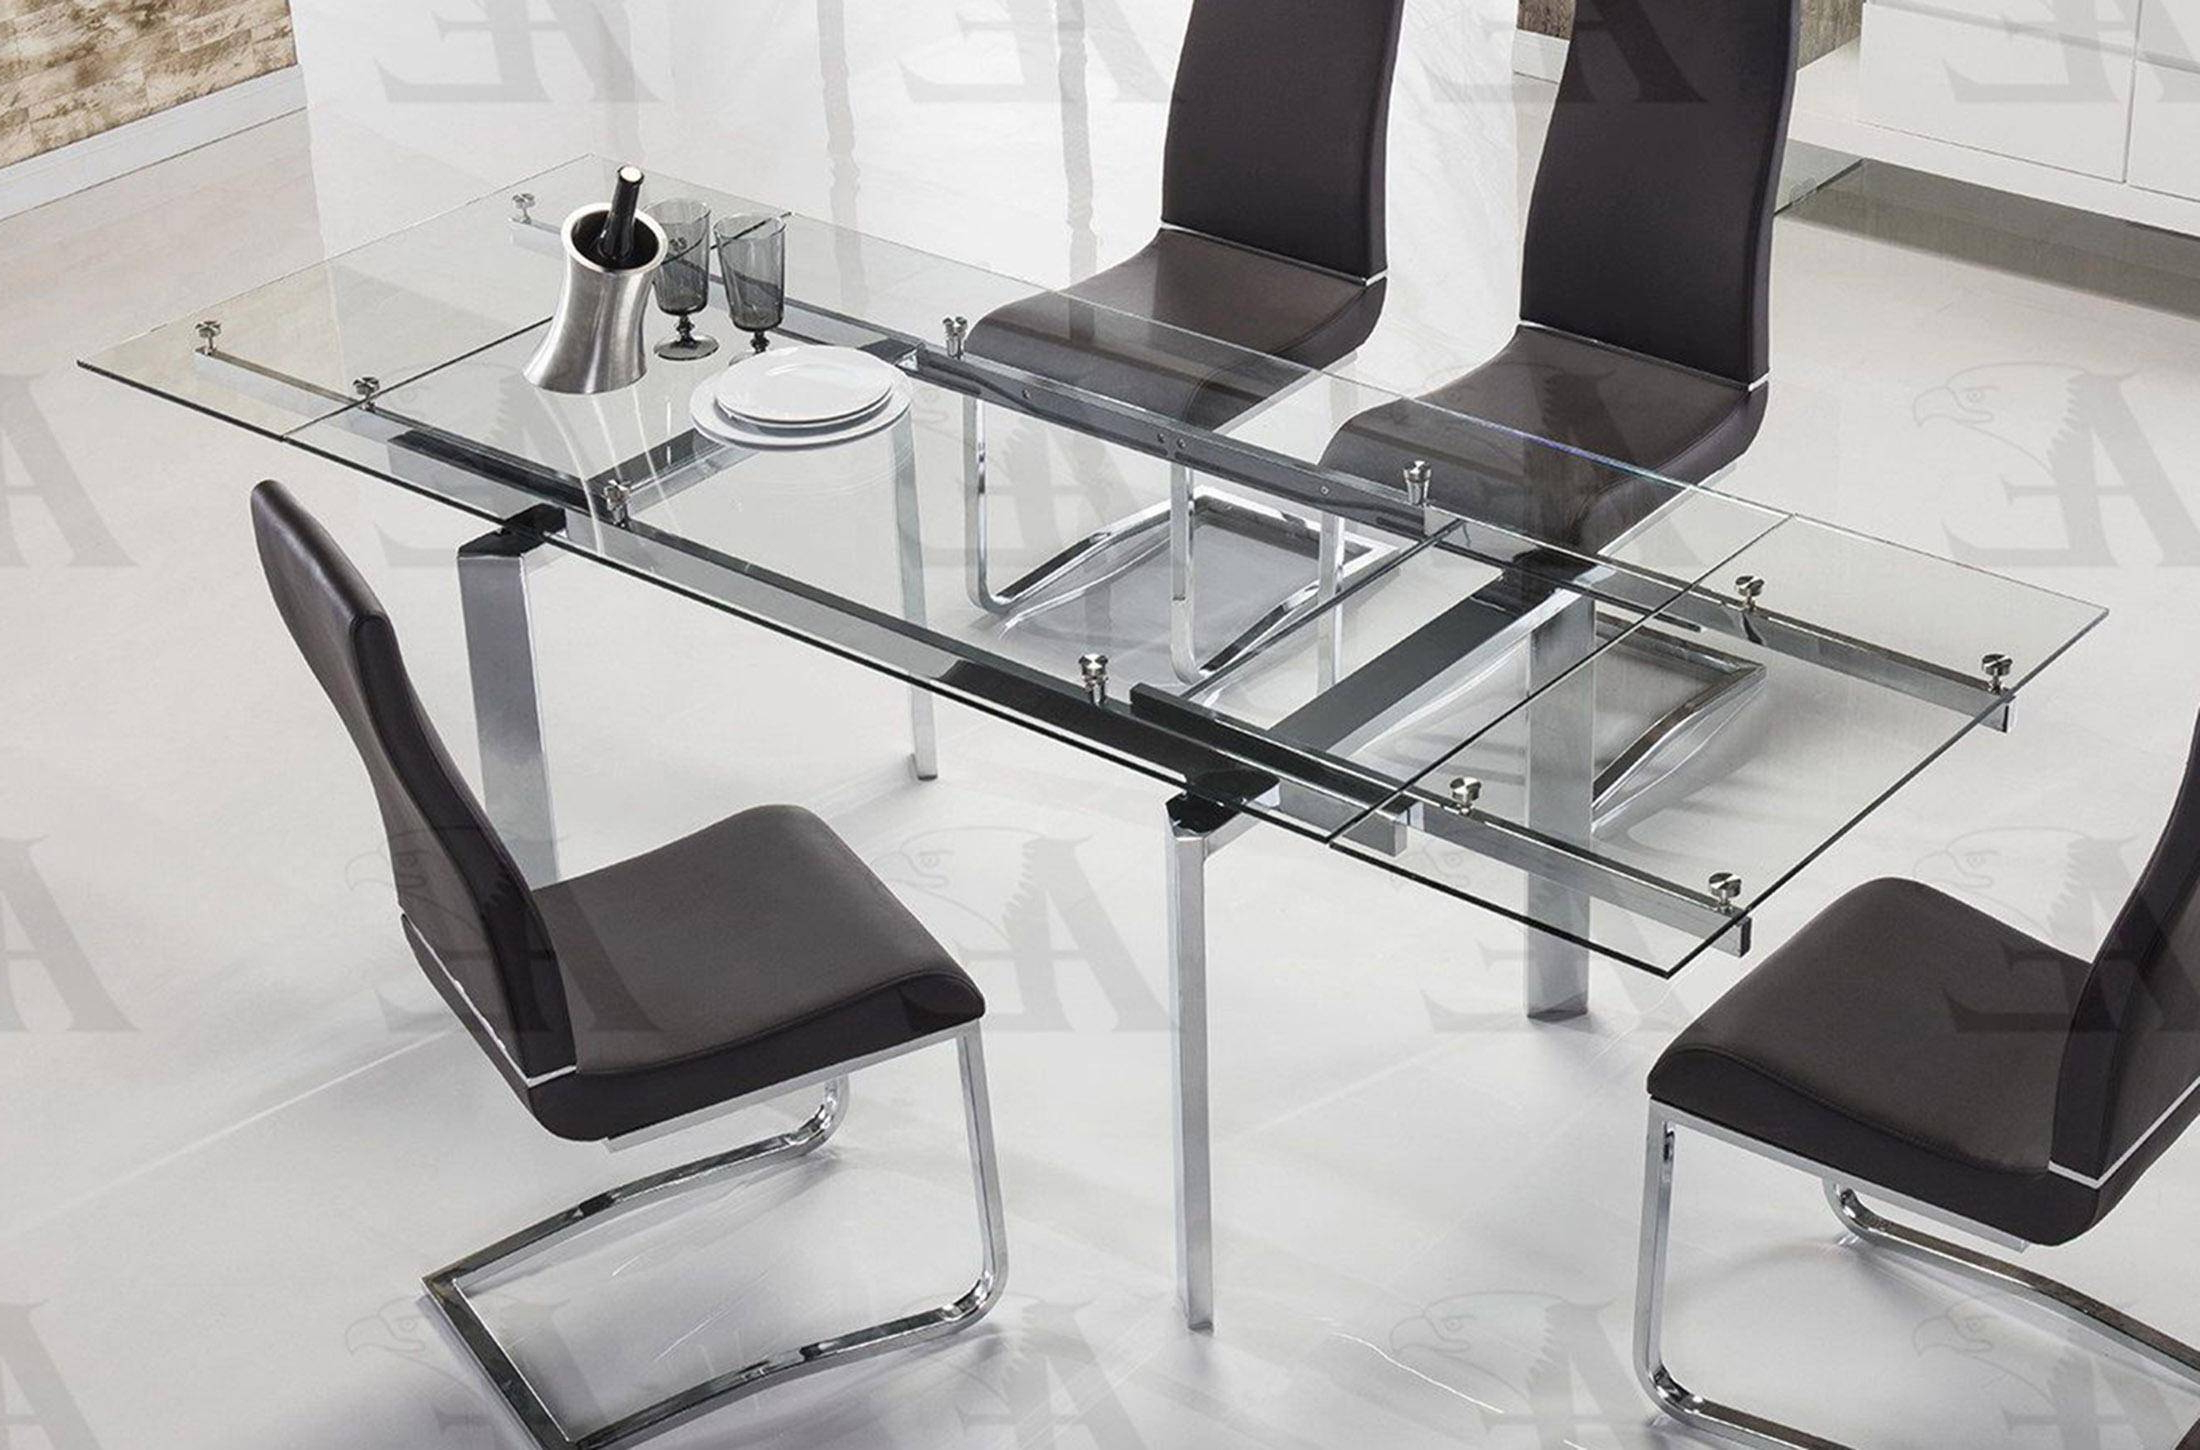 2019 American Eagle Furniture Tl 1134S C Clear Glass Top Extendable Dining Table Chrome Legs Throughout Modern Glass Top Extension Dining Tables In Stainless (View 15 of 25)